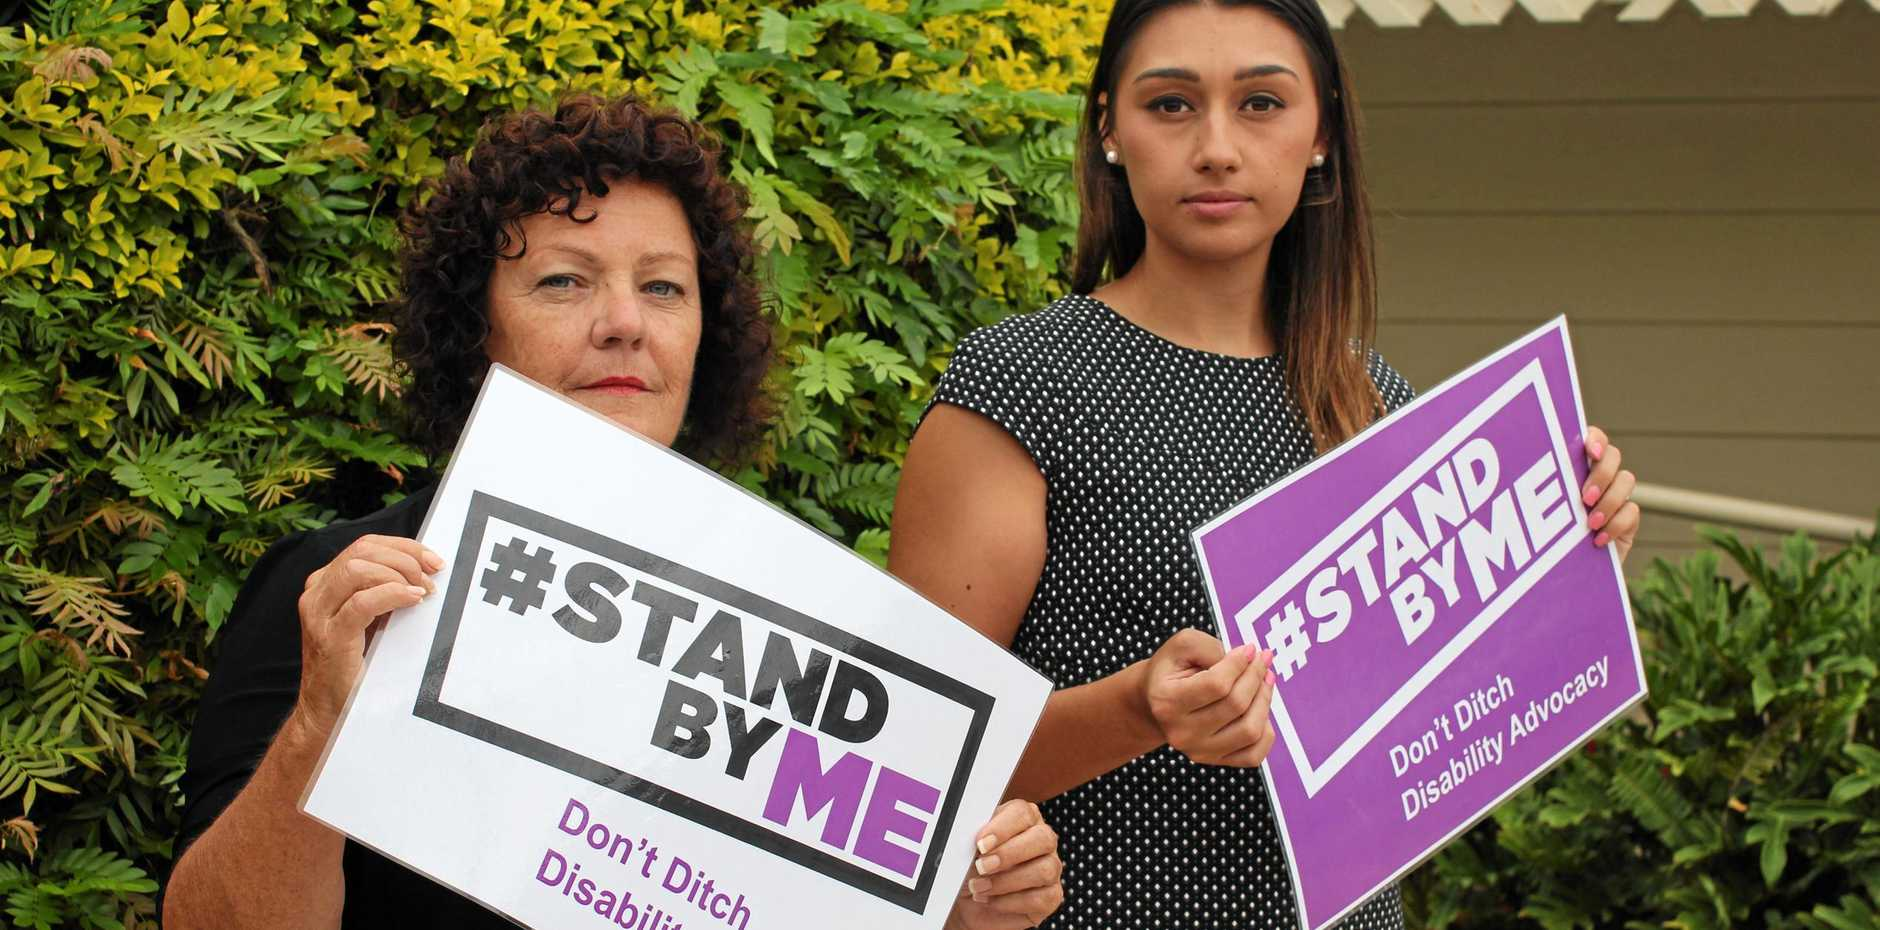 #STANDBYME: Disability Advocacy's Vanessa Smith and Olivia Agosti could lose their jobs as the NSW Government prepares to cut funding to disability advocacy services following the roll out of the NDIS.